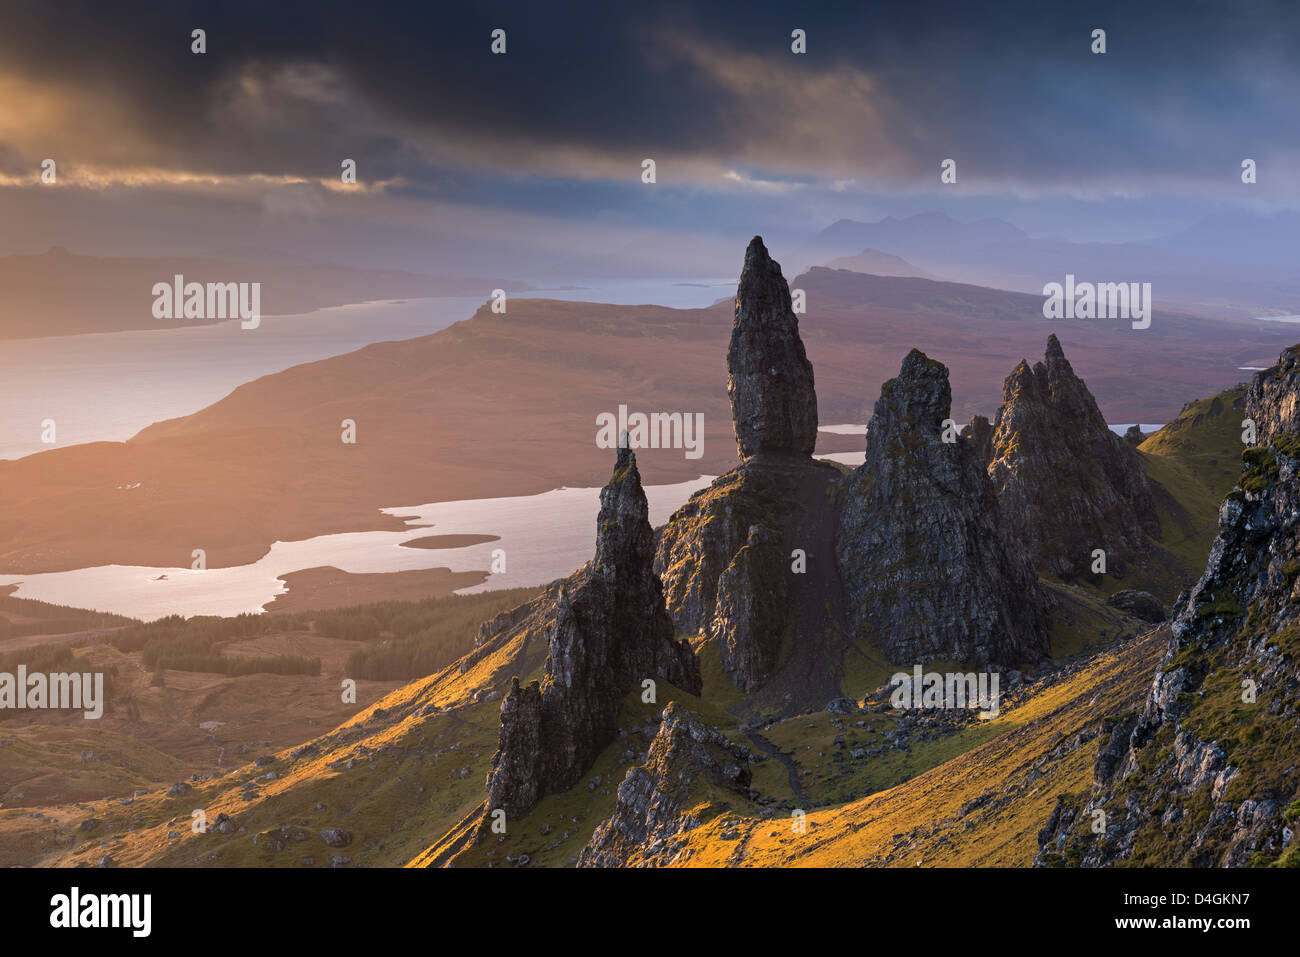 Old Man of Storr basalt pinnacles on the Isle of Skye, Scotland. Winter (November) 2012. - Stock Image